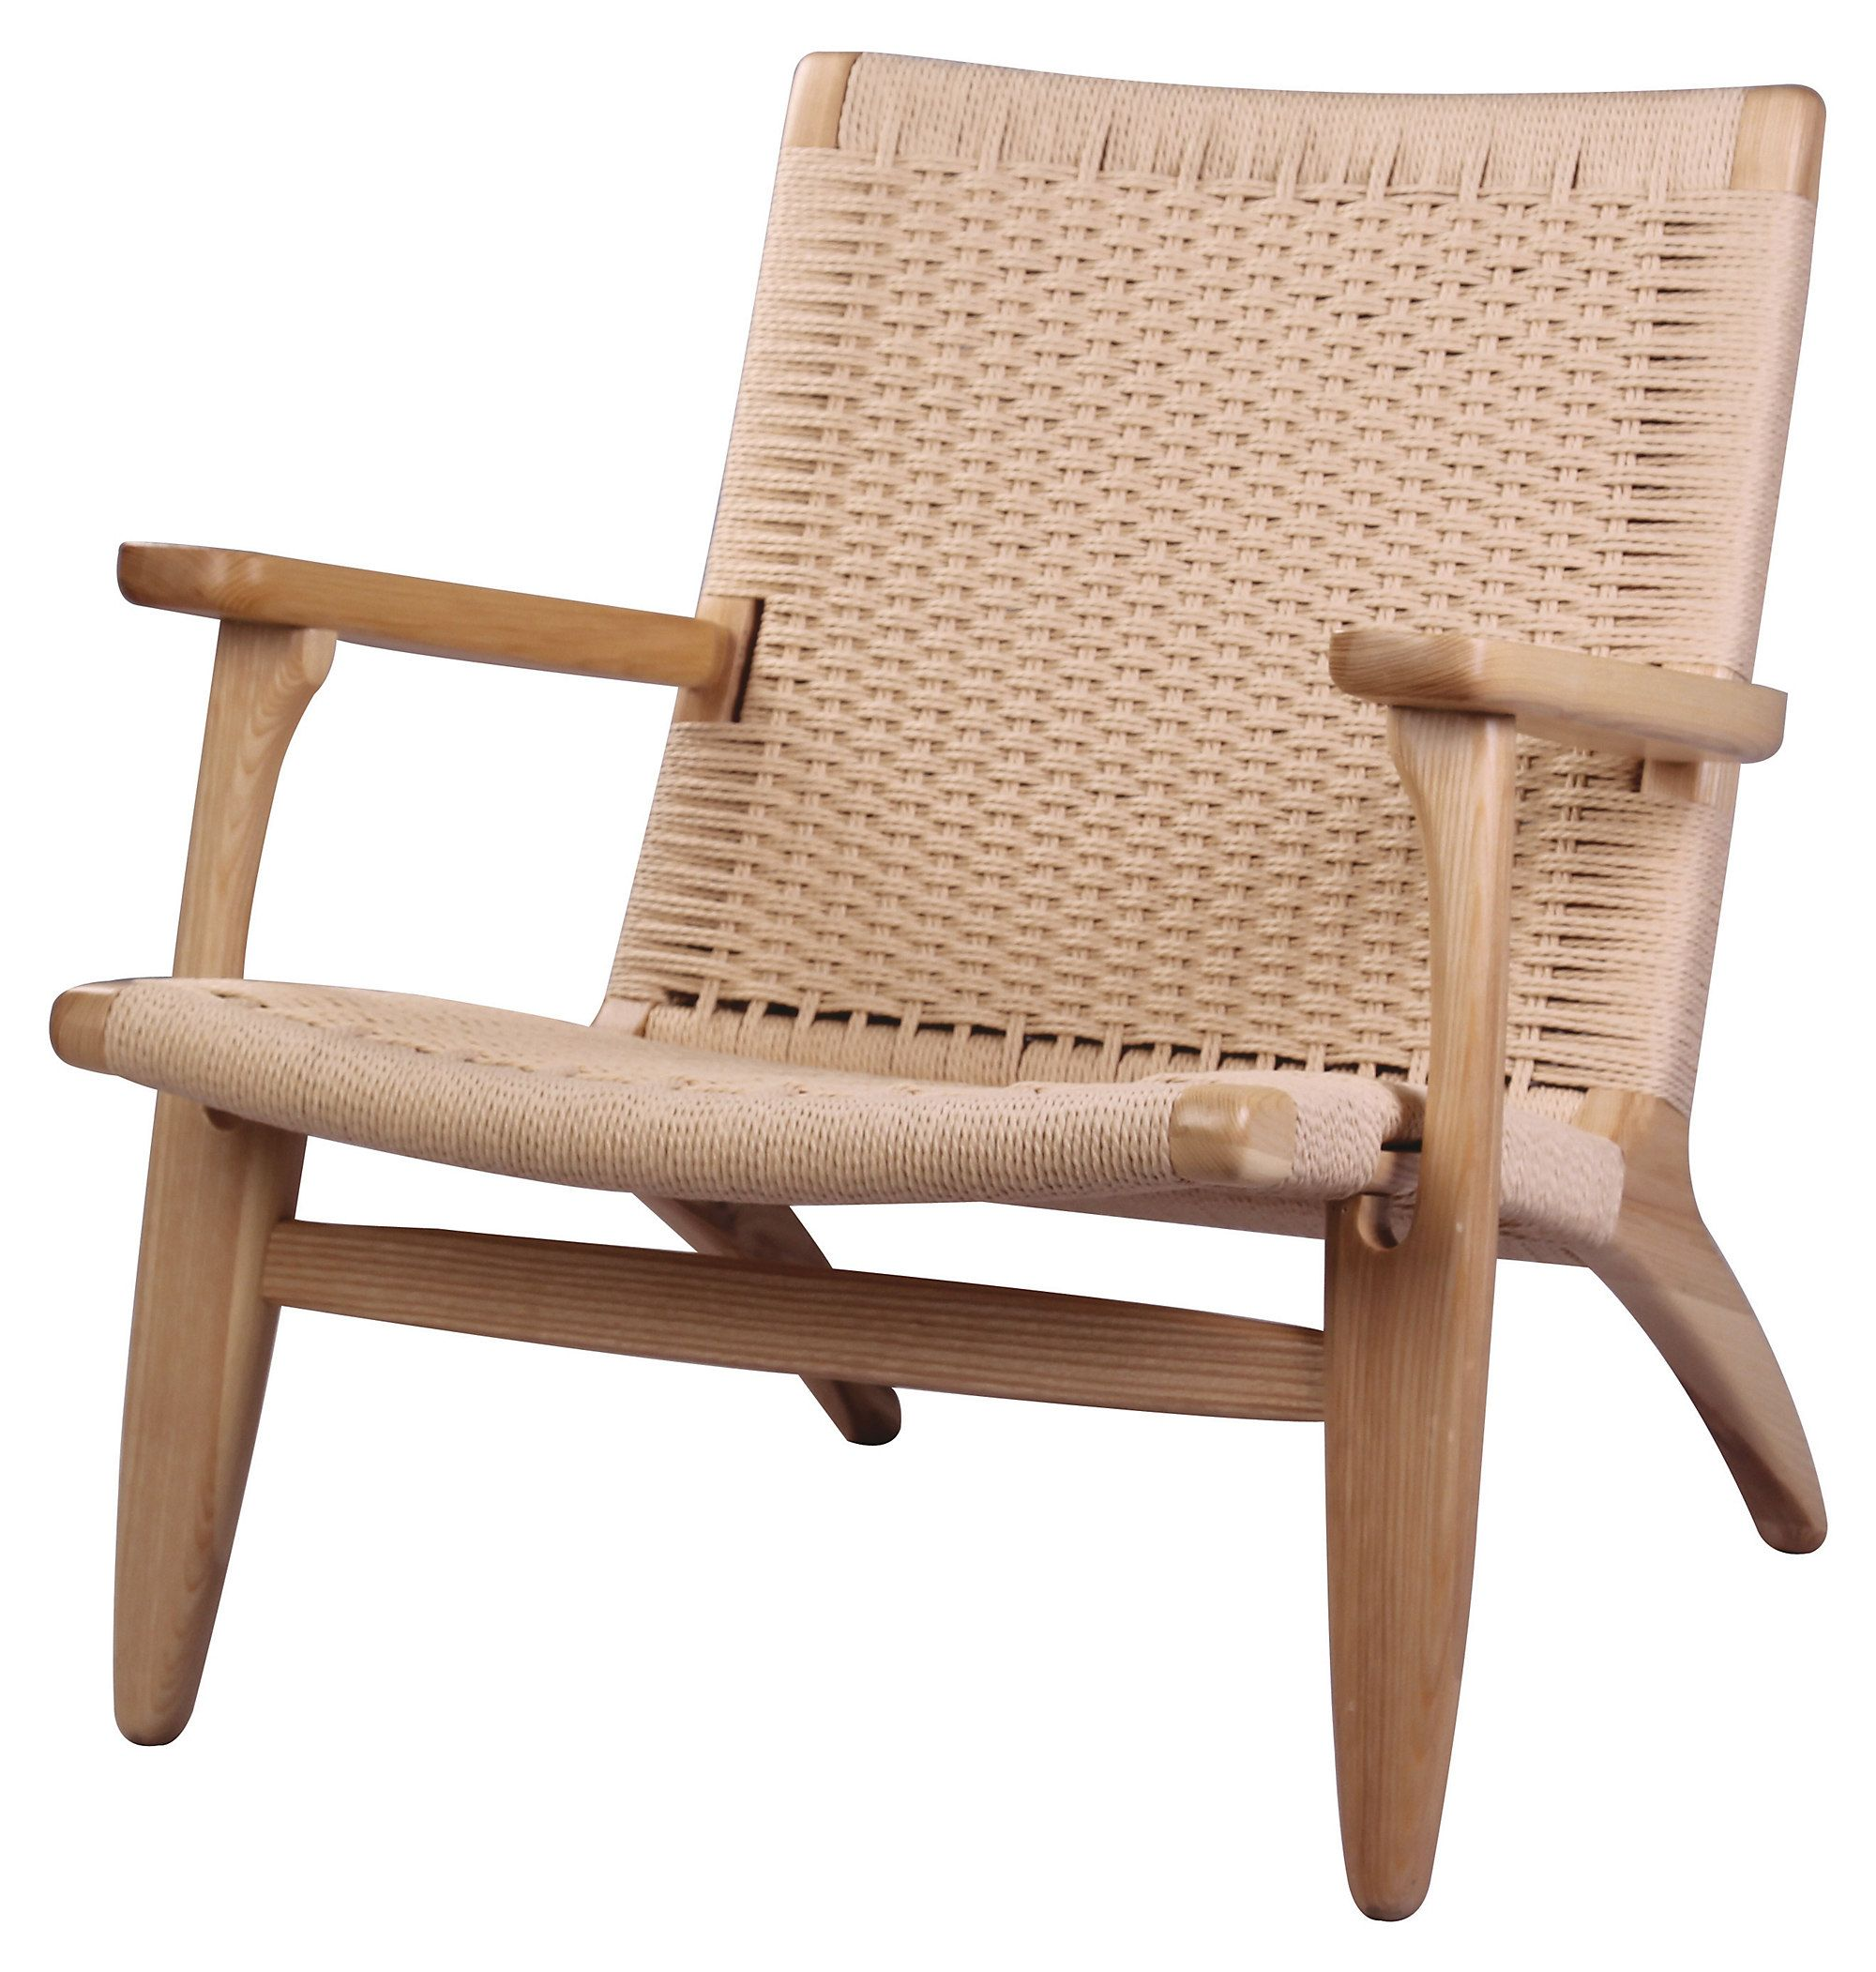 Pleasing This Low Slung Armchair Is Beautifully Crafted Of Solid Andrewgaddart Wooden Chair Designs For Living Room Andrewgaddartcom